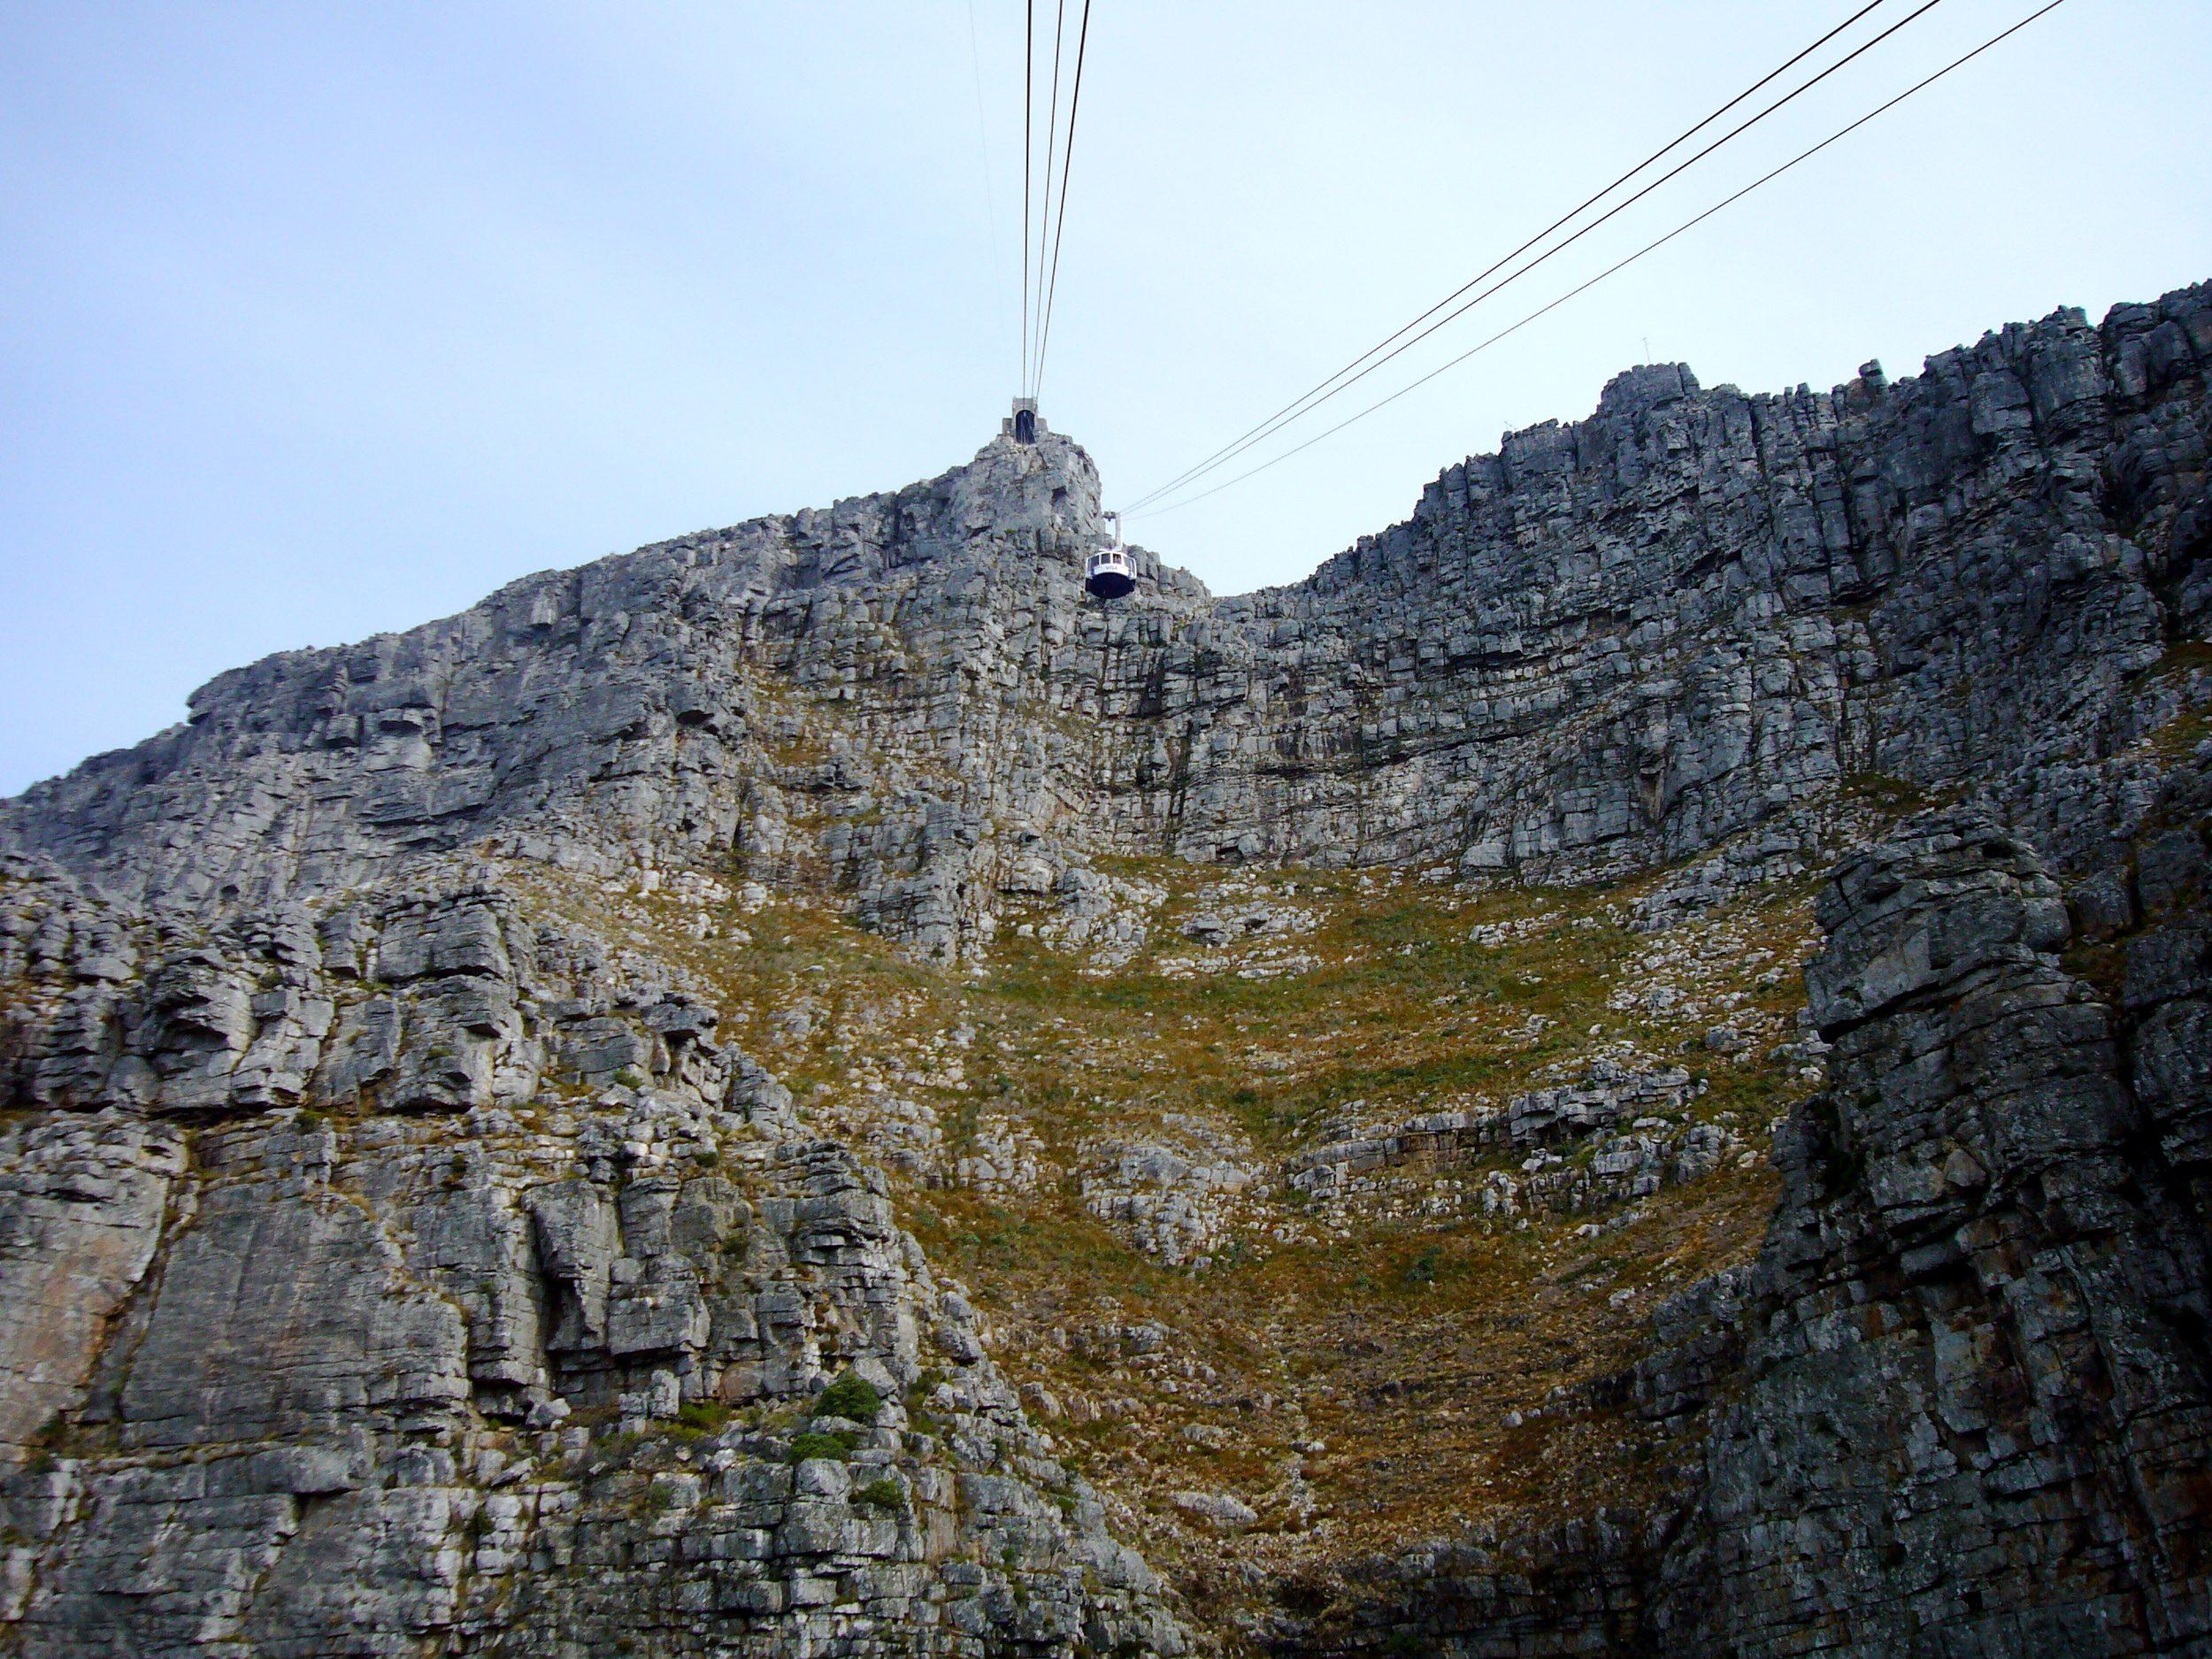 A cablecar ride up to Table Mountain